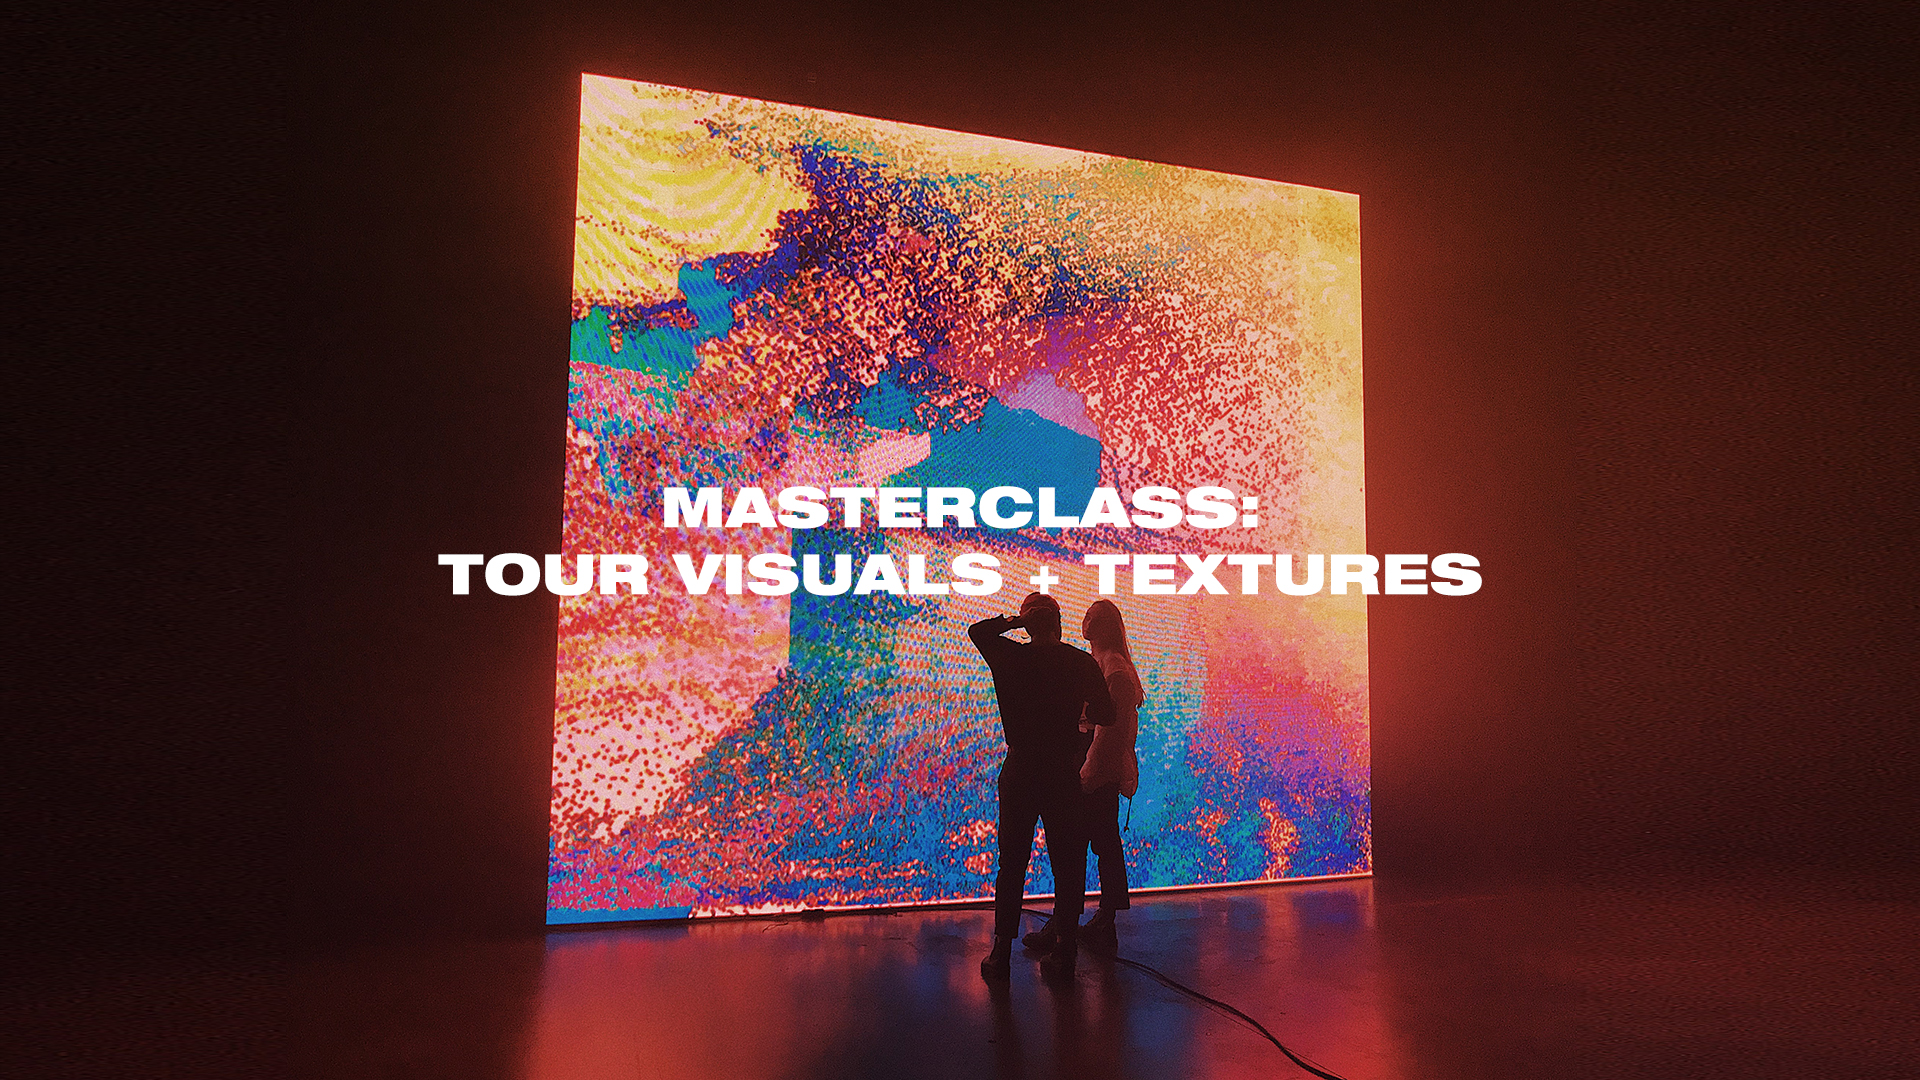 MASTERCLASS: TOUR VISUALS + TEXTURES | $119  Learn how to create stunning visuals and textures for your films and live shows!  GET 60+ TOUR VISUAL ELEMENTS FOR FREE ($49 VALUE)!